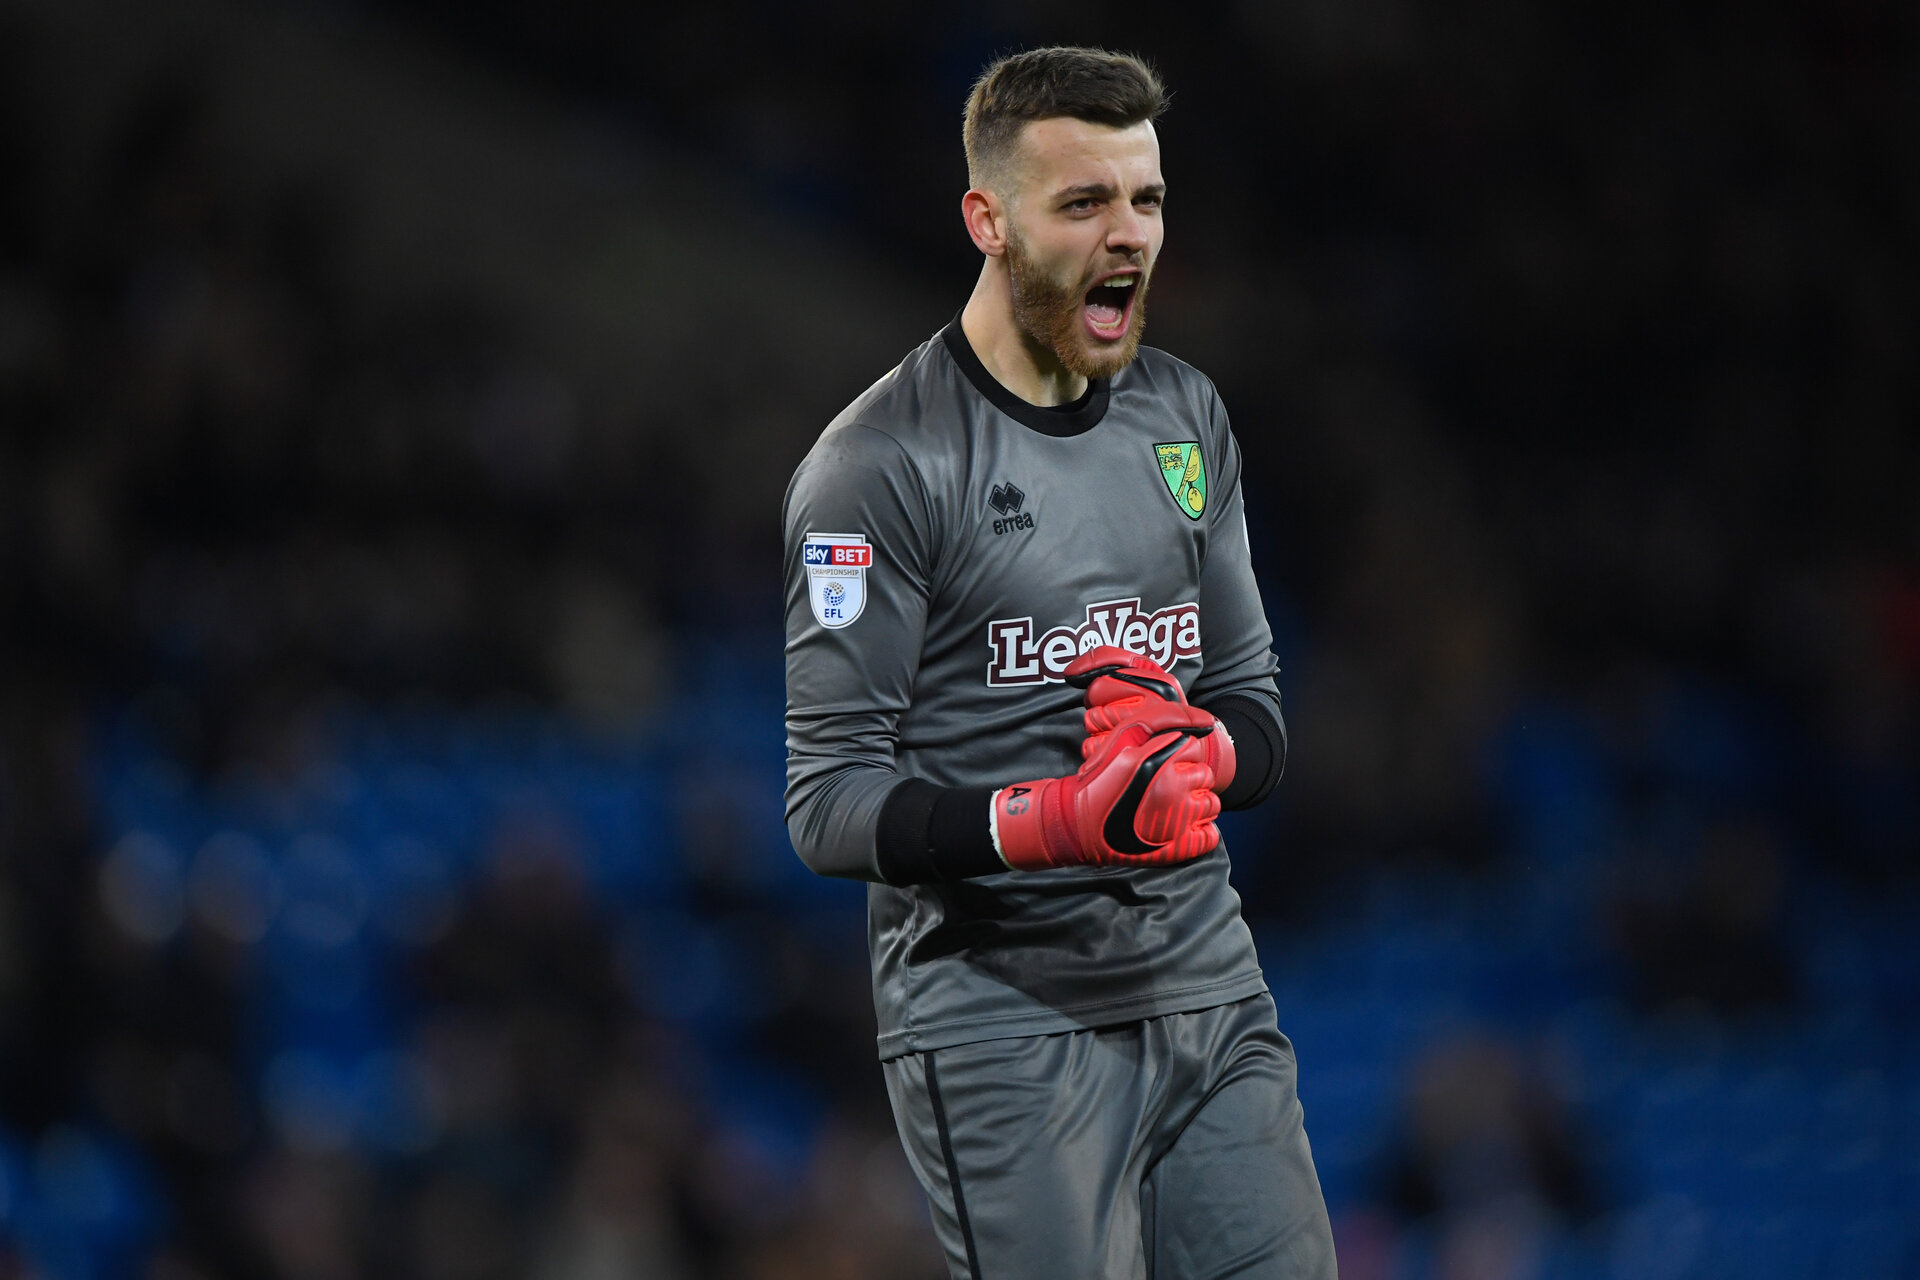 CARDIFF, WALES - DECEMBER 01:  Norwich keeper Angus Gunn reacts during the Sky Bet Championship match between Cardiff City and Norwich City at Cardiff City Stadium on December 1, 2017 in Cardiff, Wales.  (Photo by Stu Forster/Getty Images)